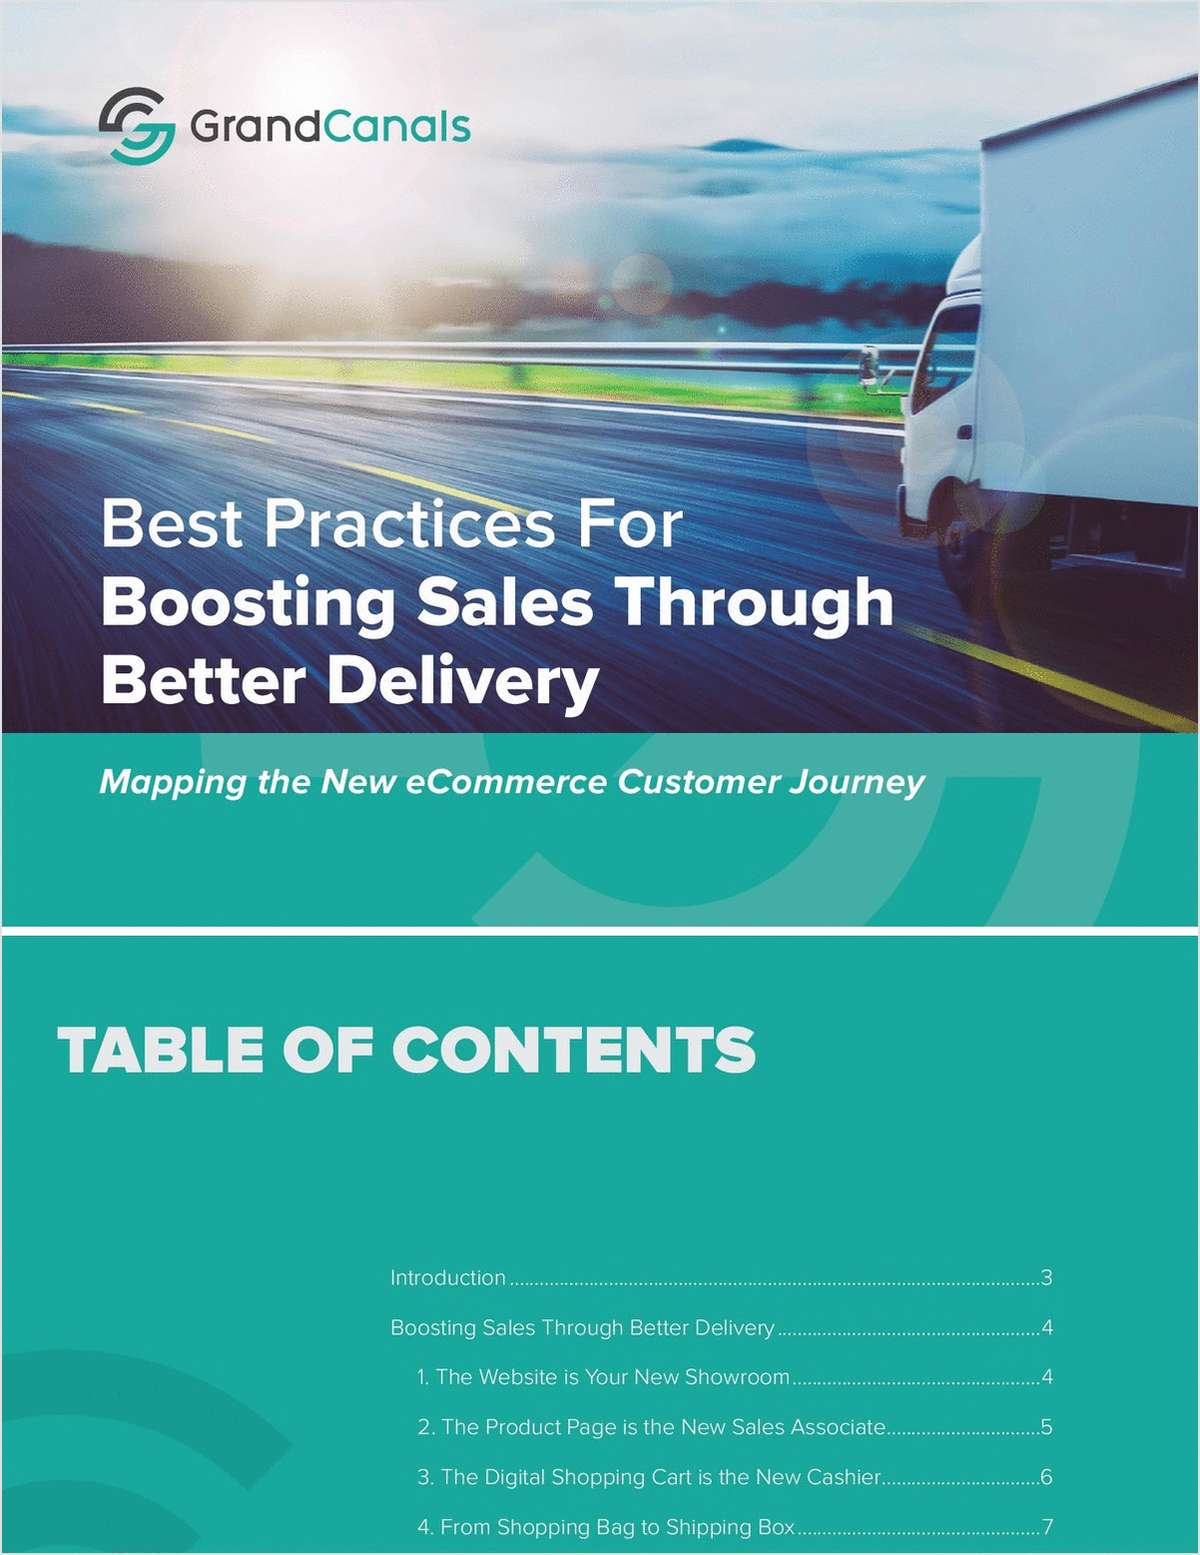 Best Practices for Boosting Sales Through Better Delivery